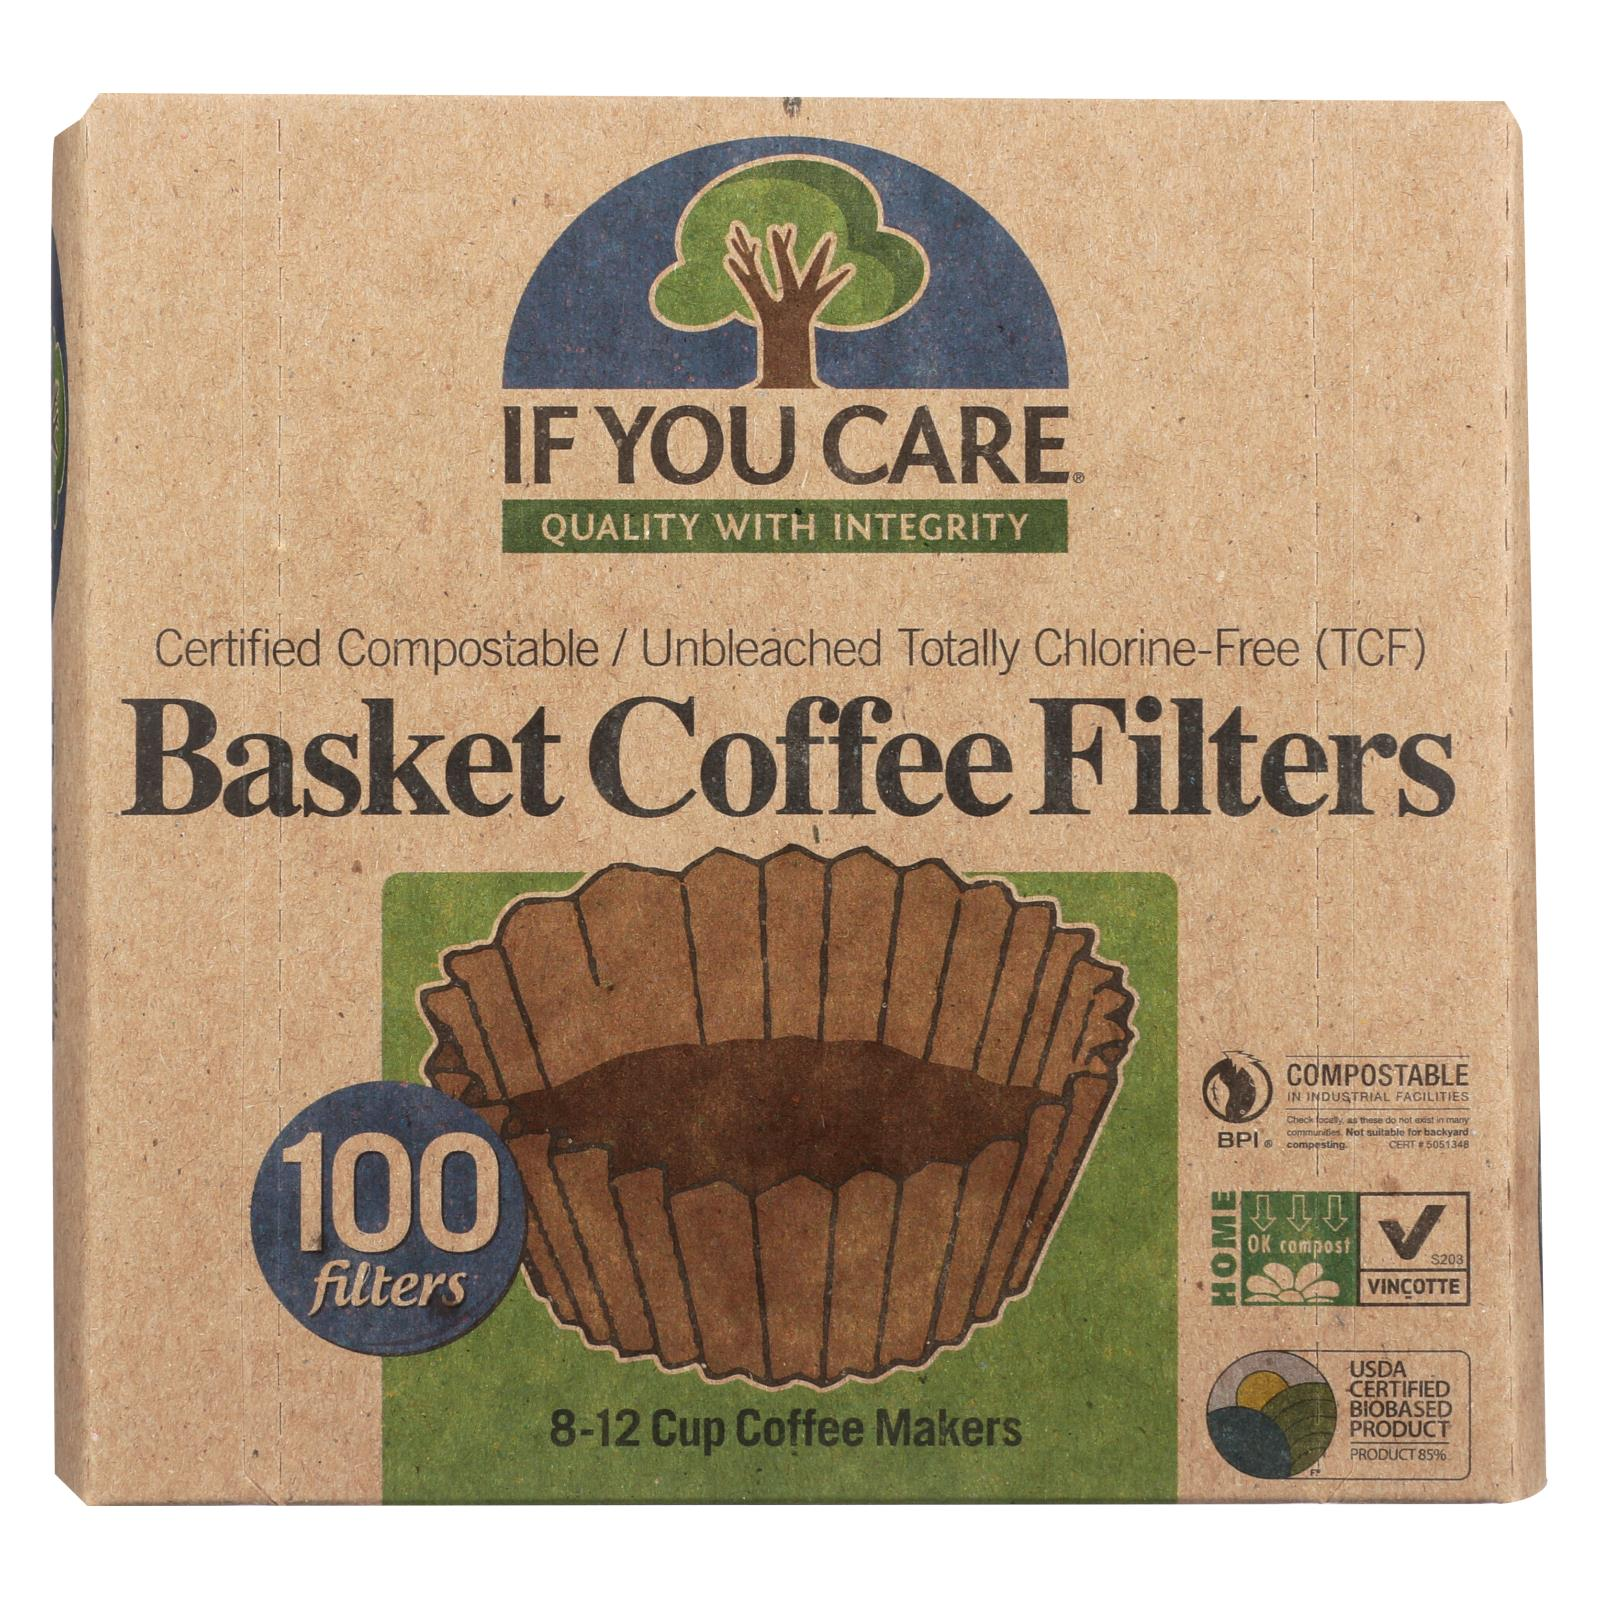 Buy If You Care Coffee Filters - 100 Ct - Coffee Filters from Veroeco.com